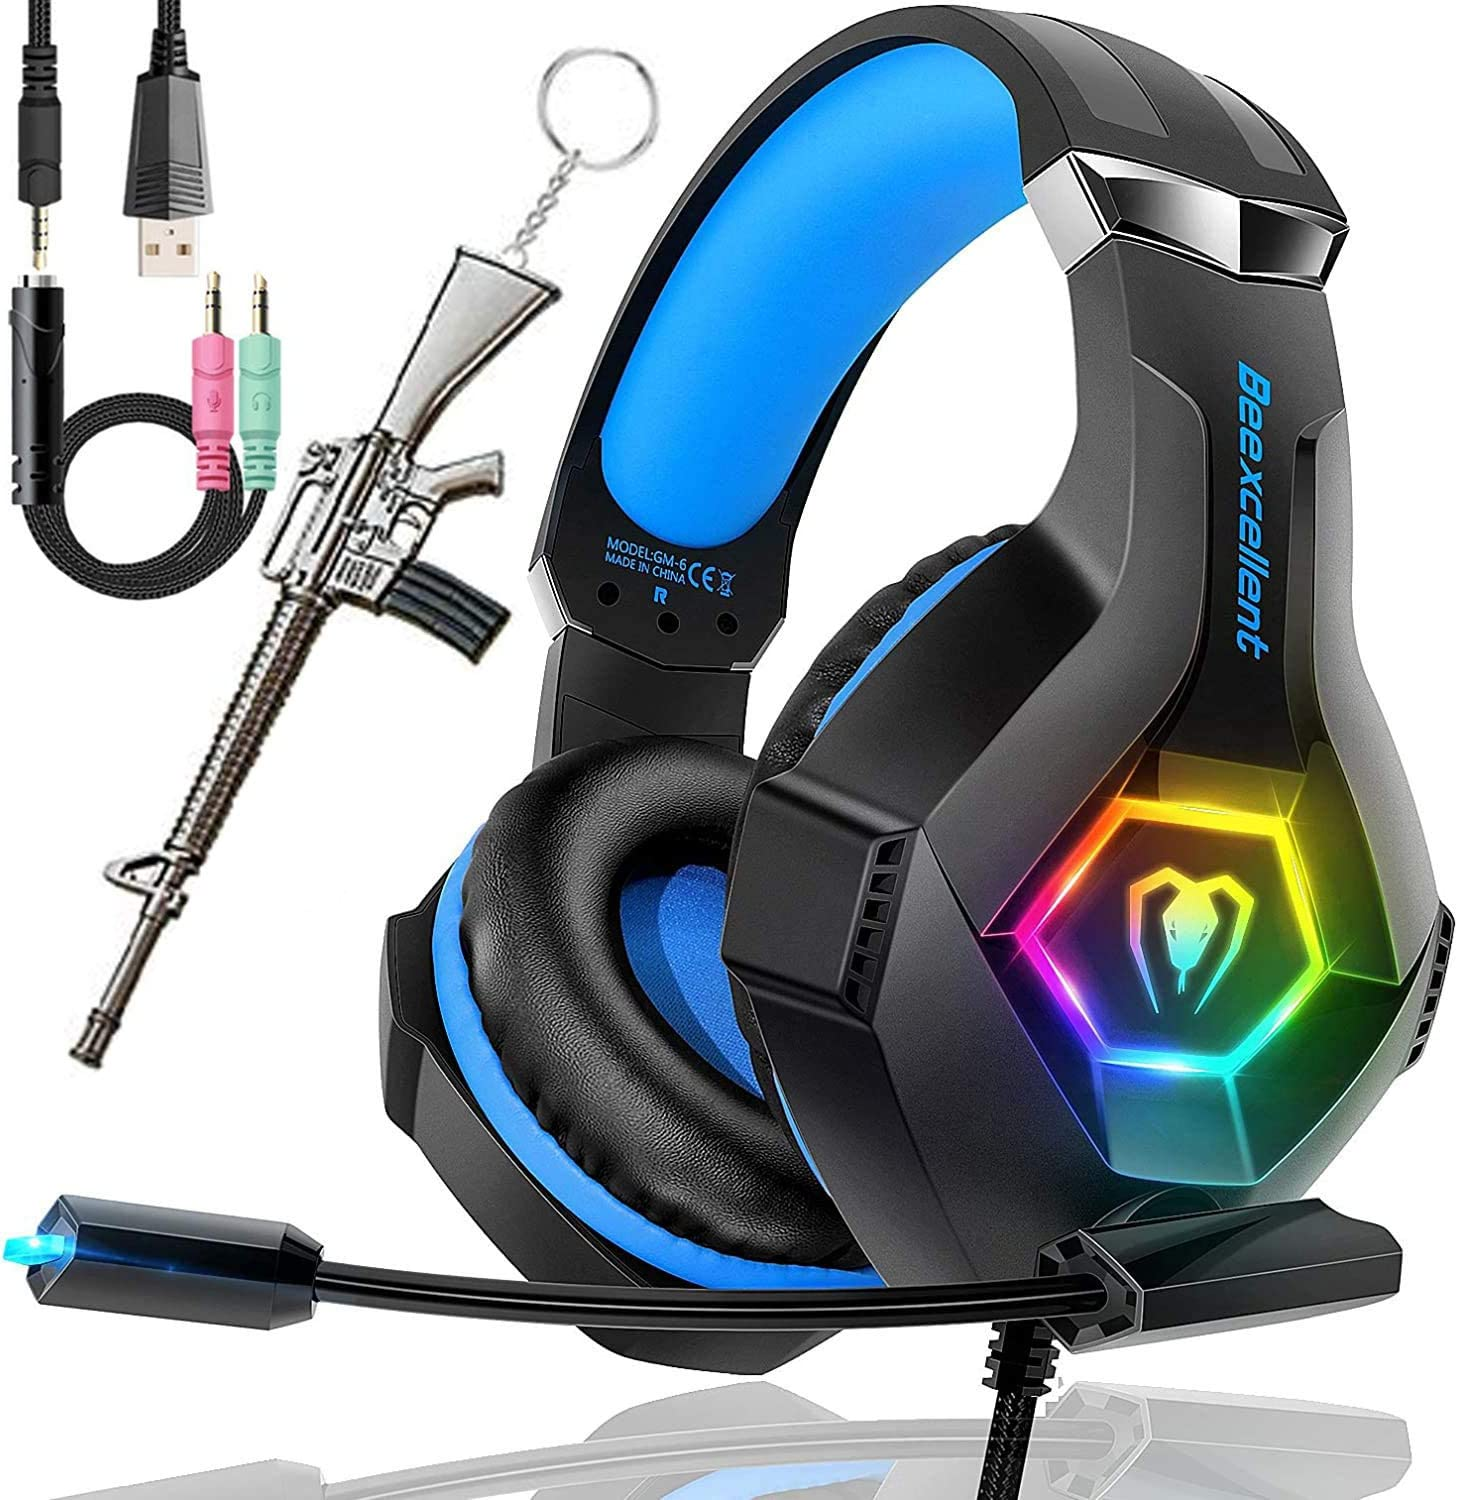 SVYHUOK PS4 Max 50% OFF Gaming Headset with Max 84% OFF Lightwei 2019 Latest Stereo Mic